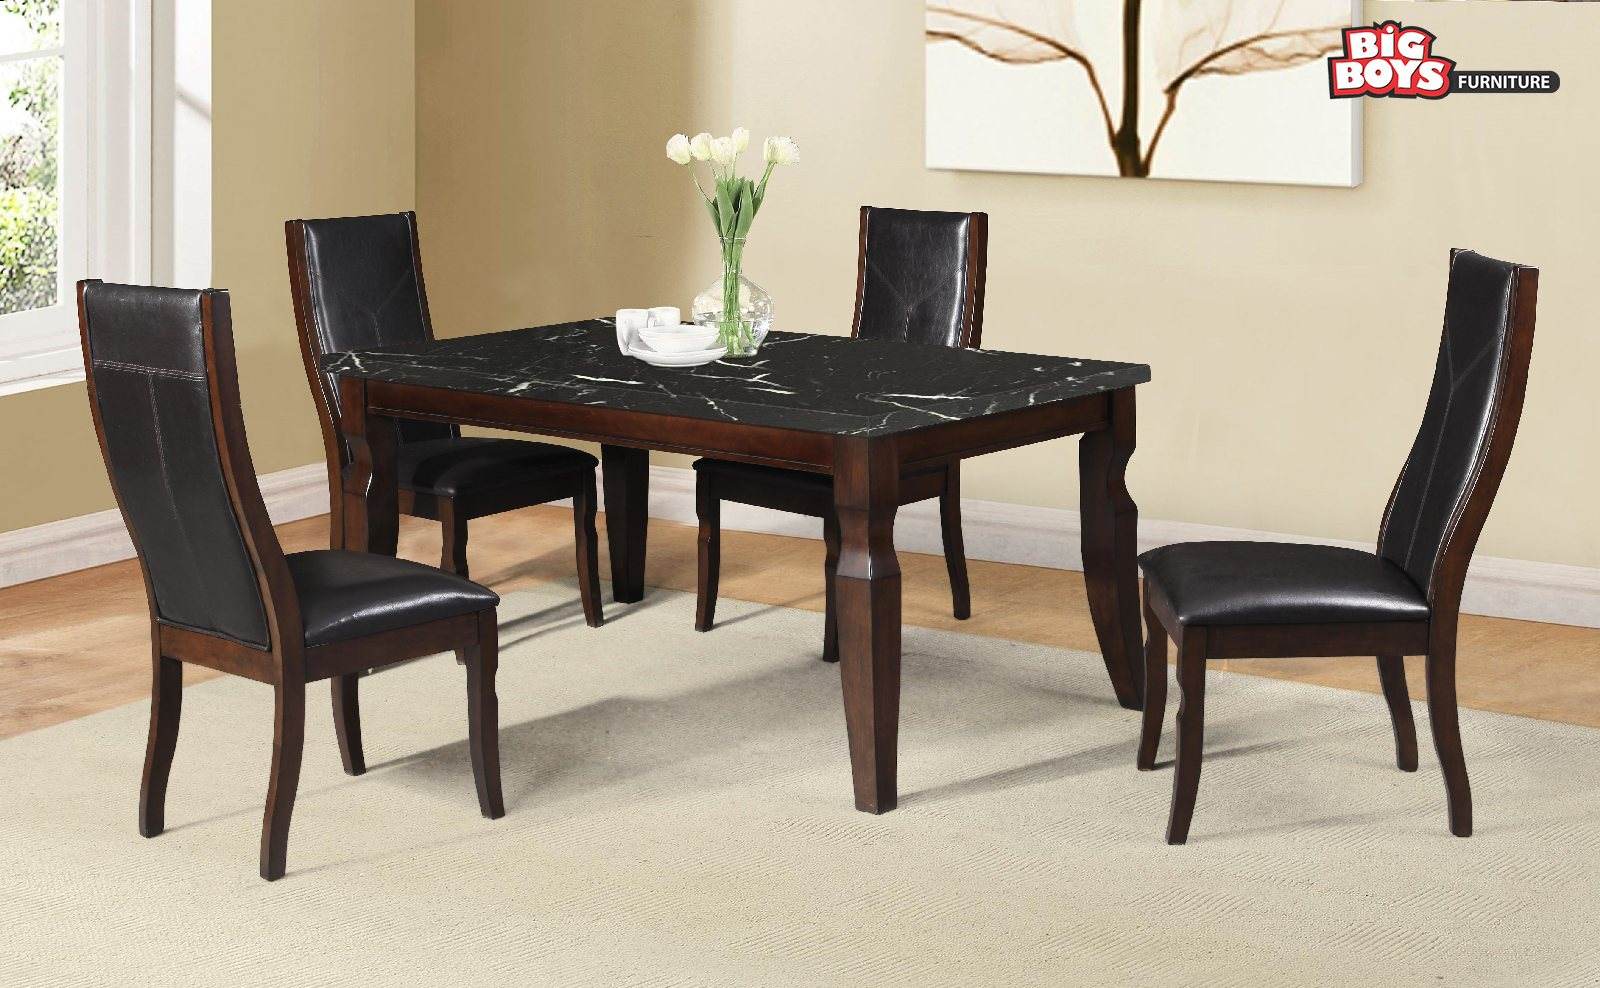 Dining Set Big-Boys-Furniture-Delta-6266-DR-1